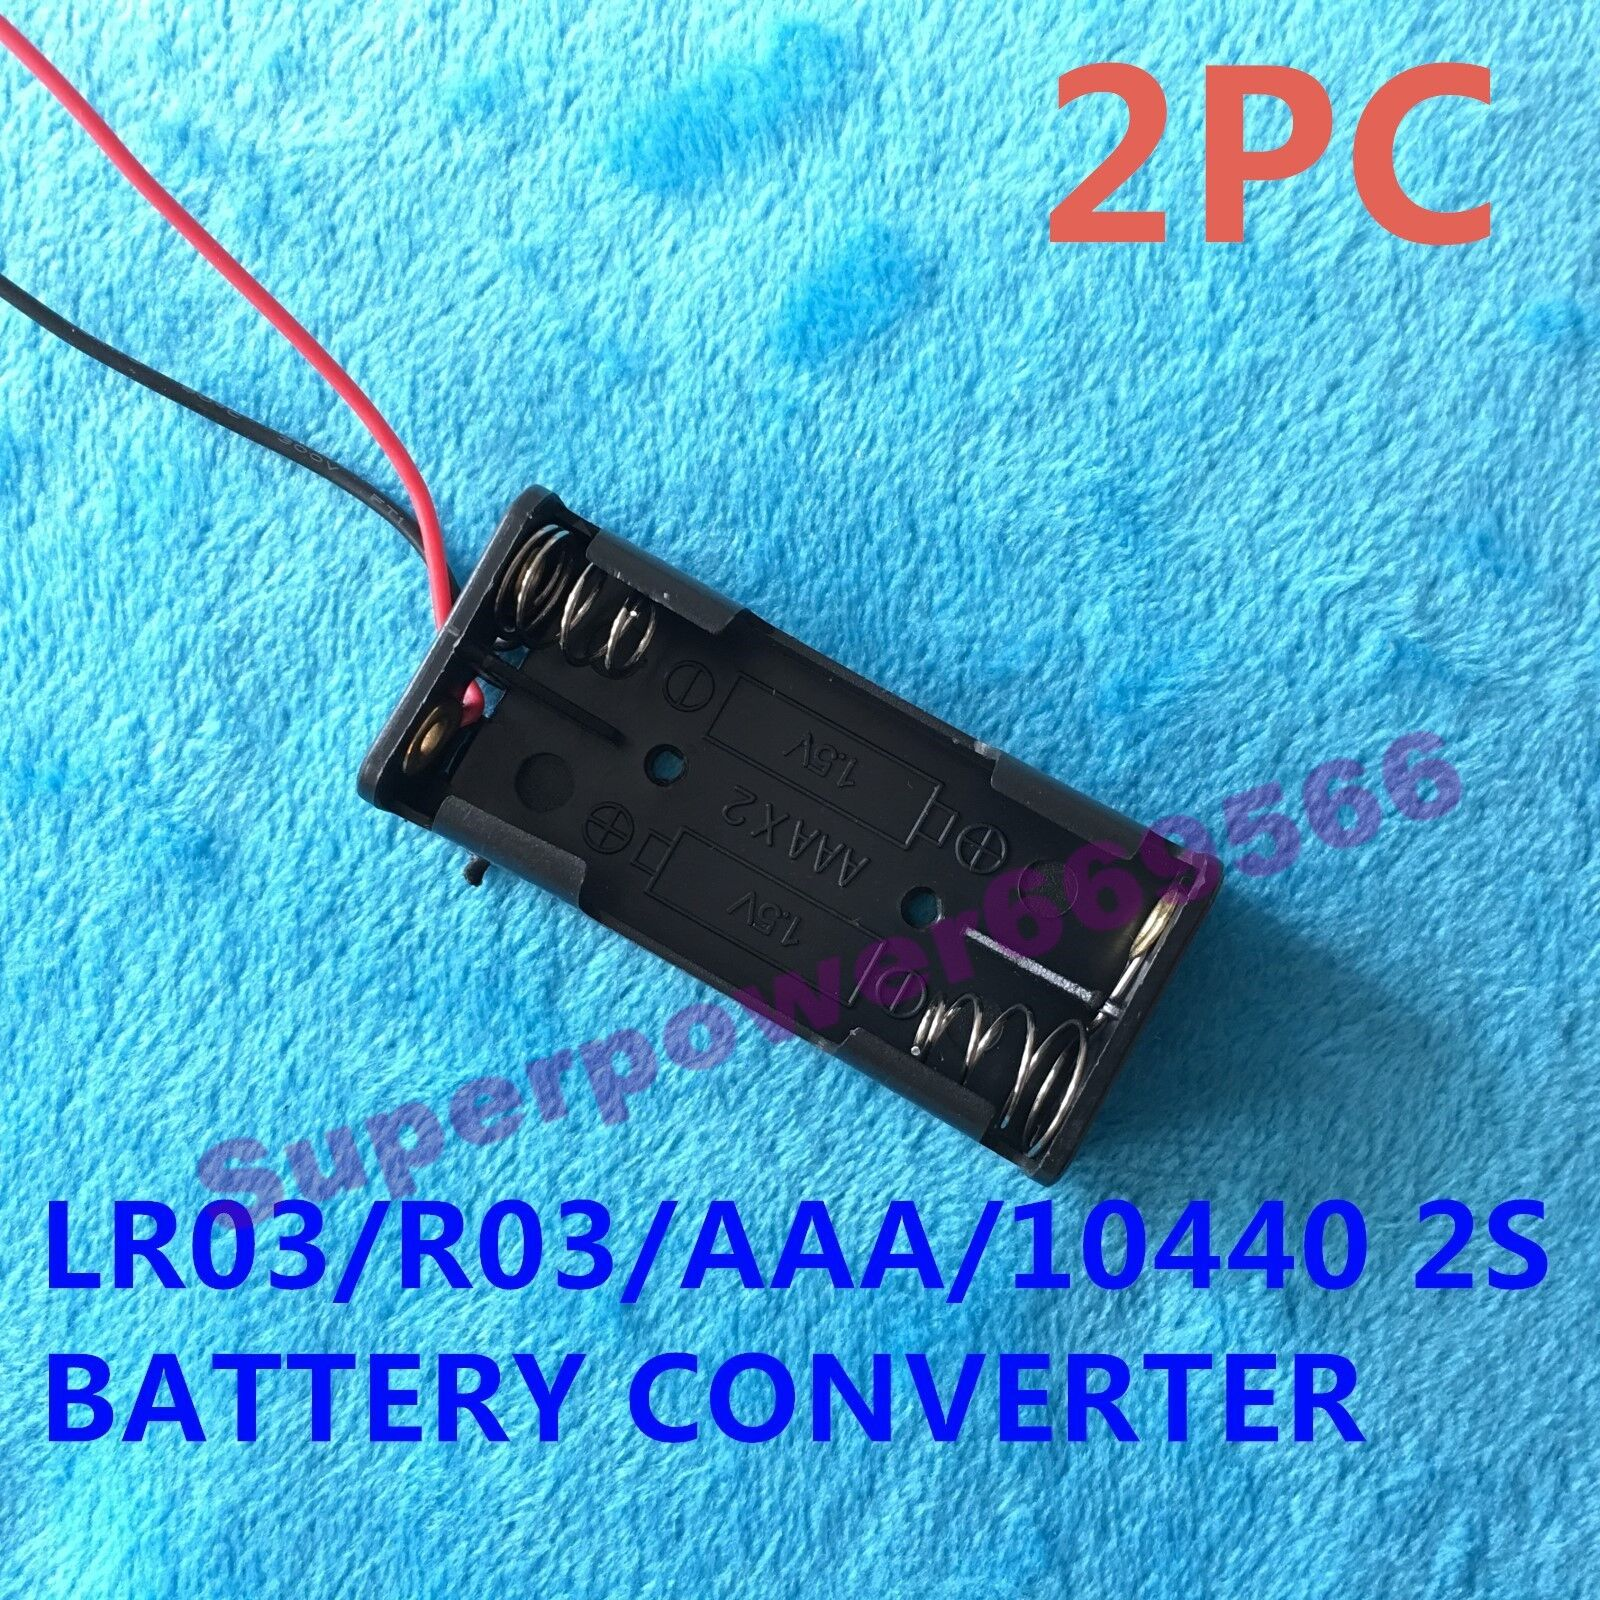 2PC TWO slot clip plastic connector holder for LR03 R03 AAA 10440 DRY BATTERY